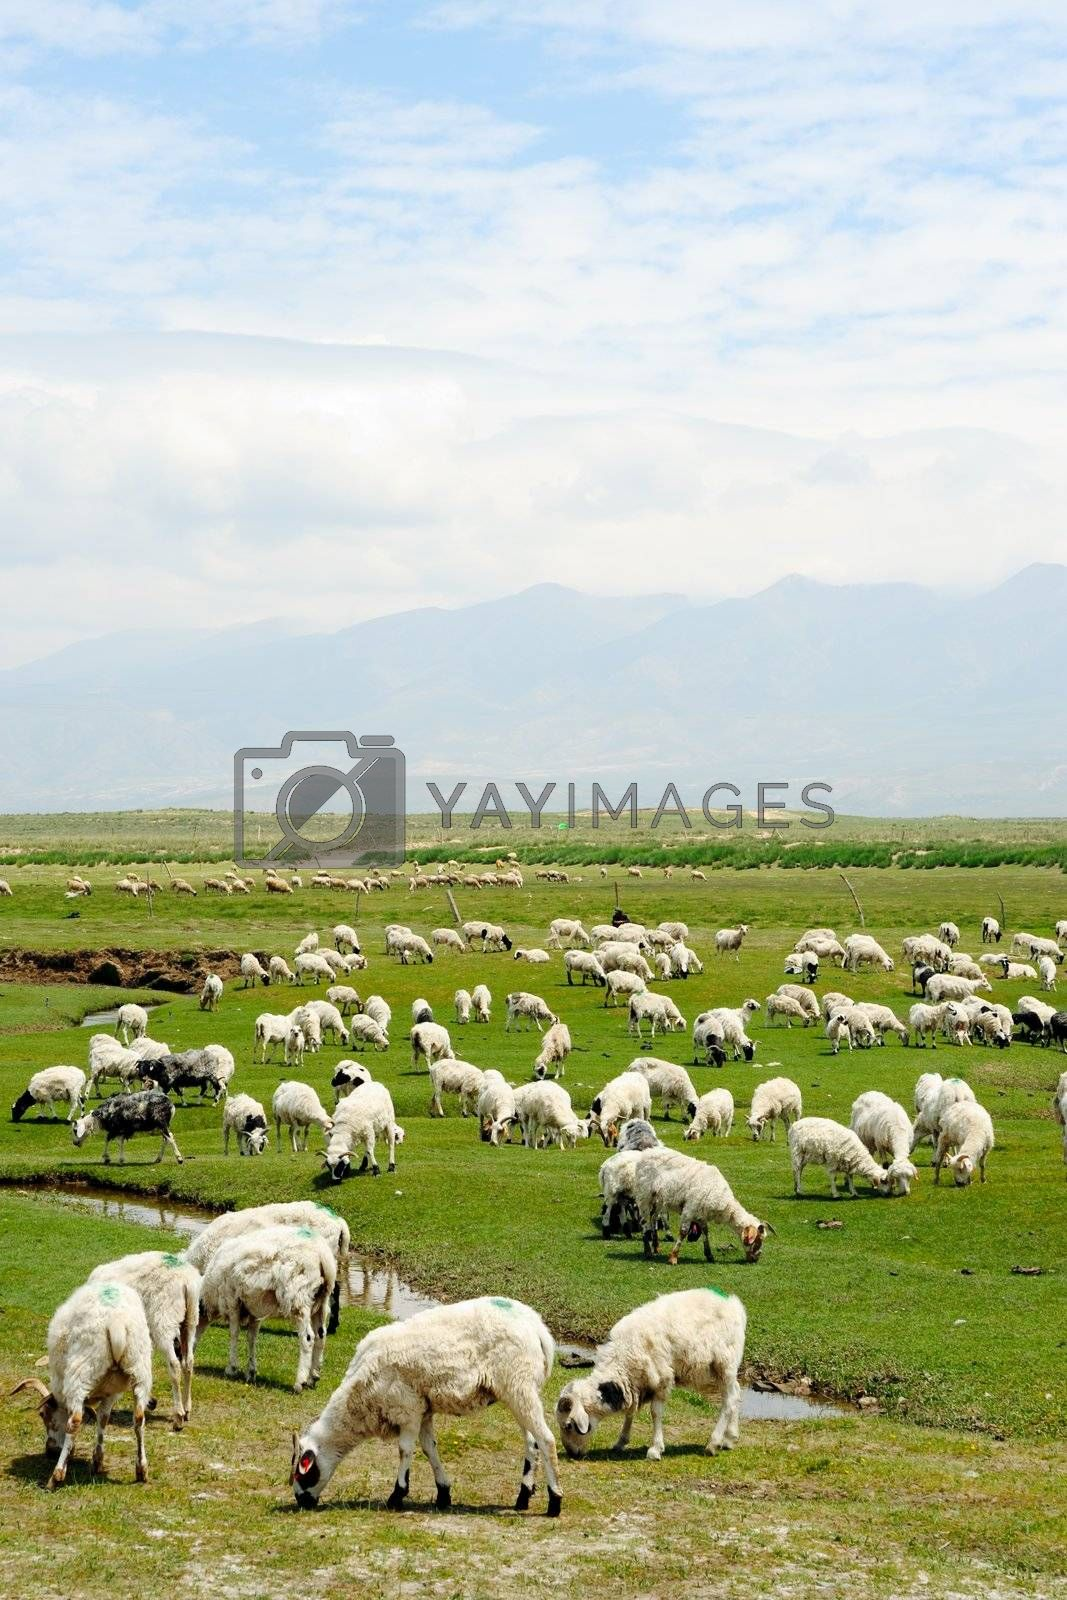 Goats grazing in the grassland in qinghai province, China